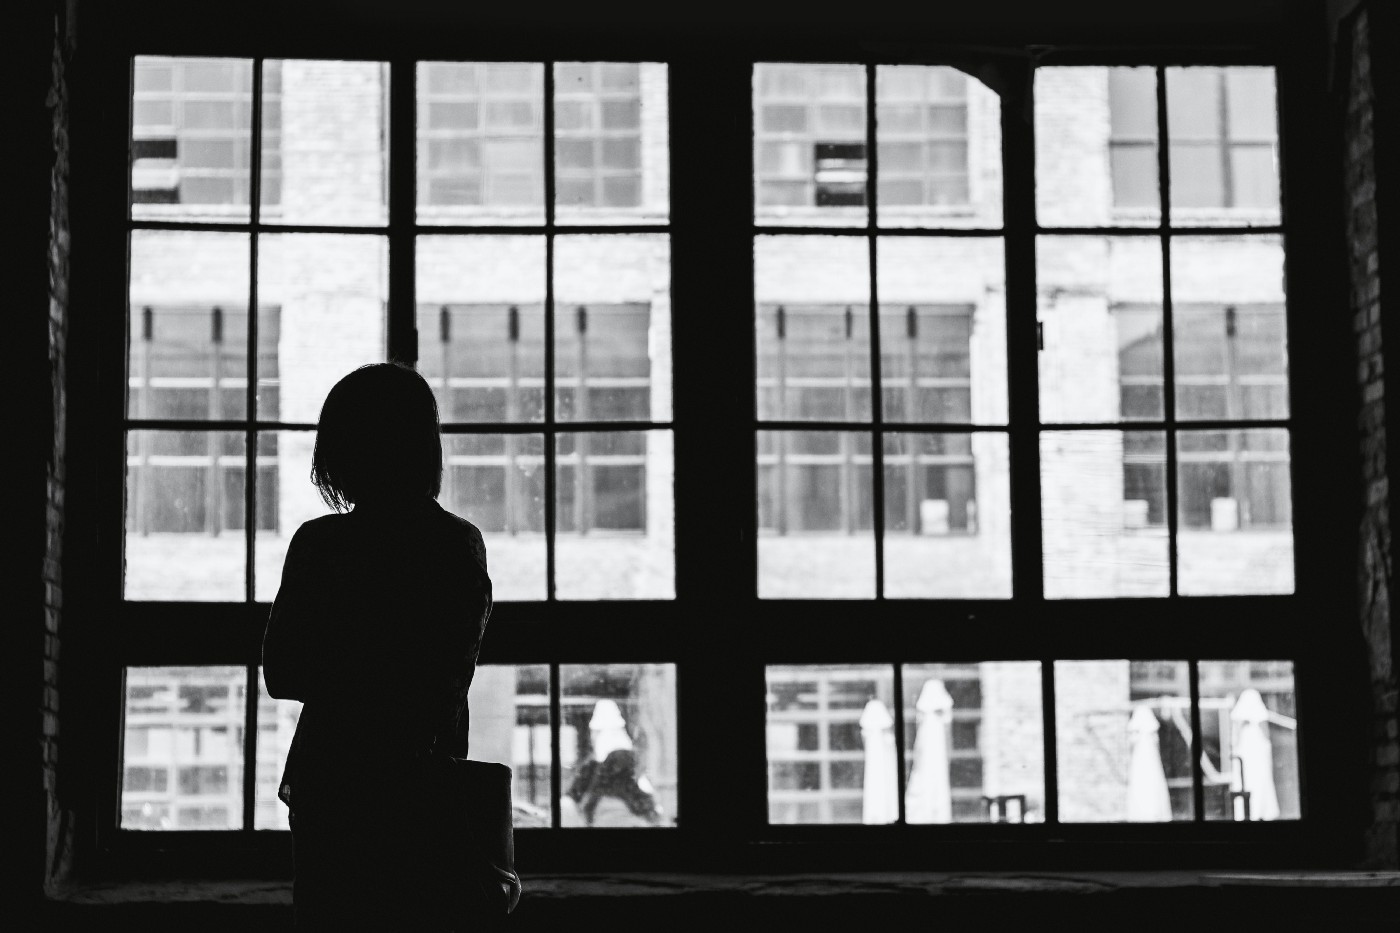 Black and white window with a person in silhouette.